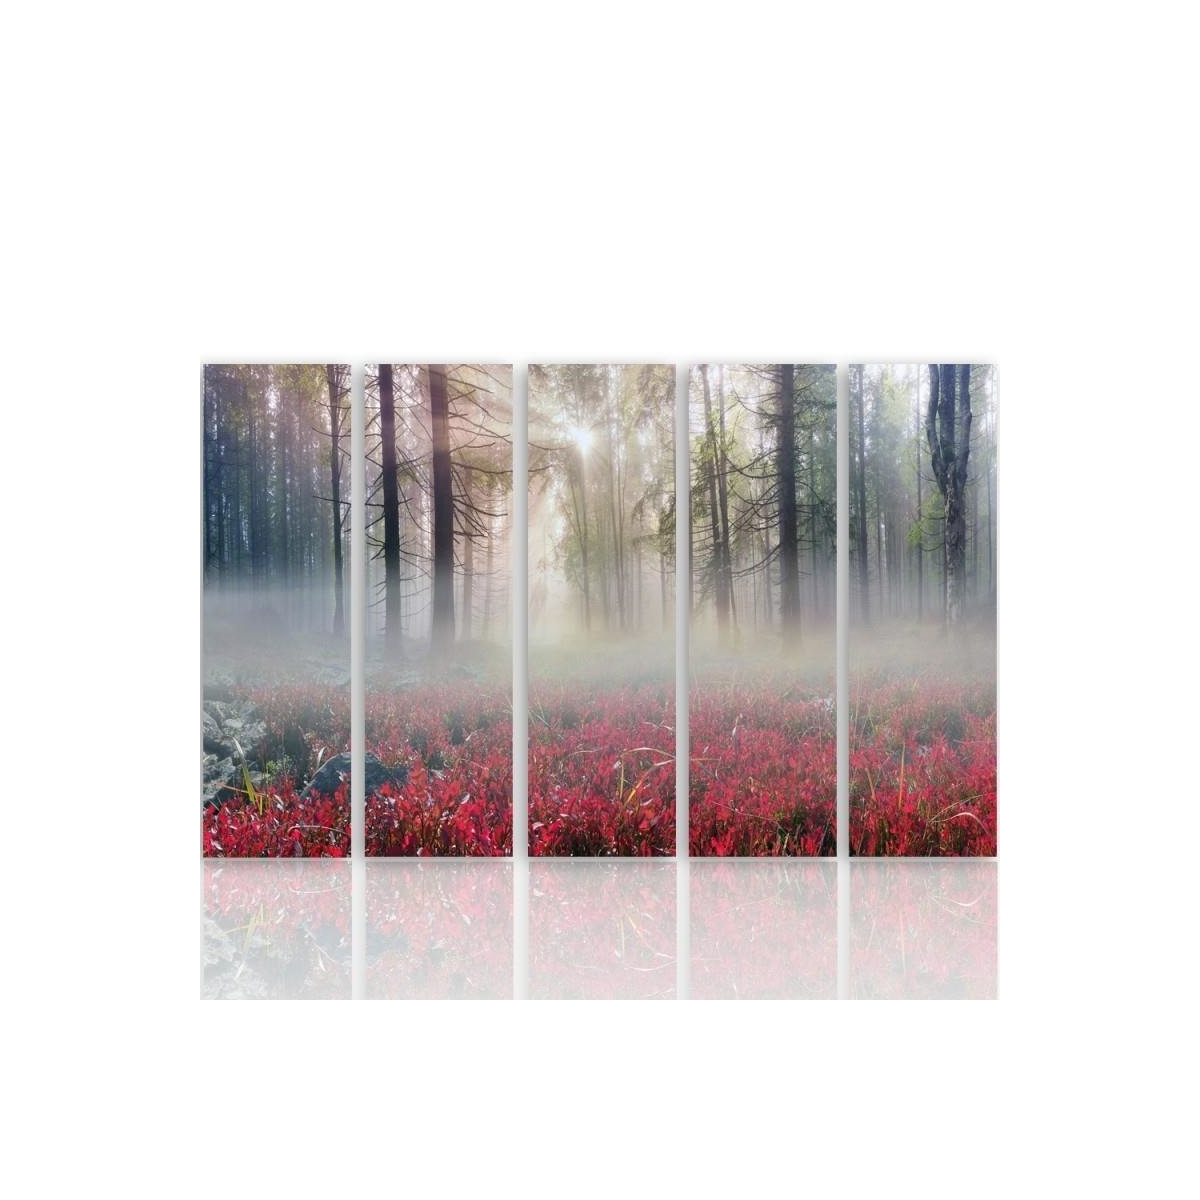 Five Part Picture On Canvas, Pentaptych, Type C, Mist Over The Clearing 100x150